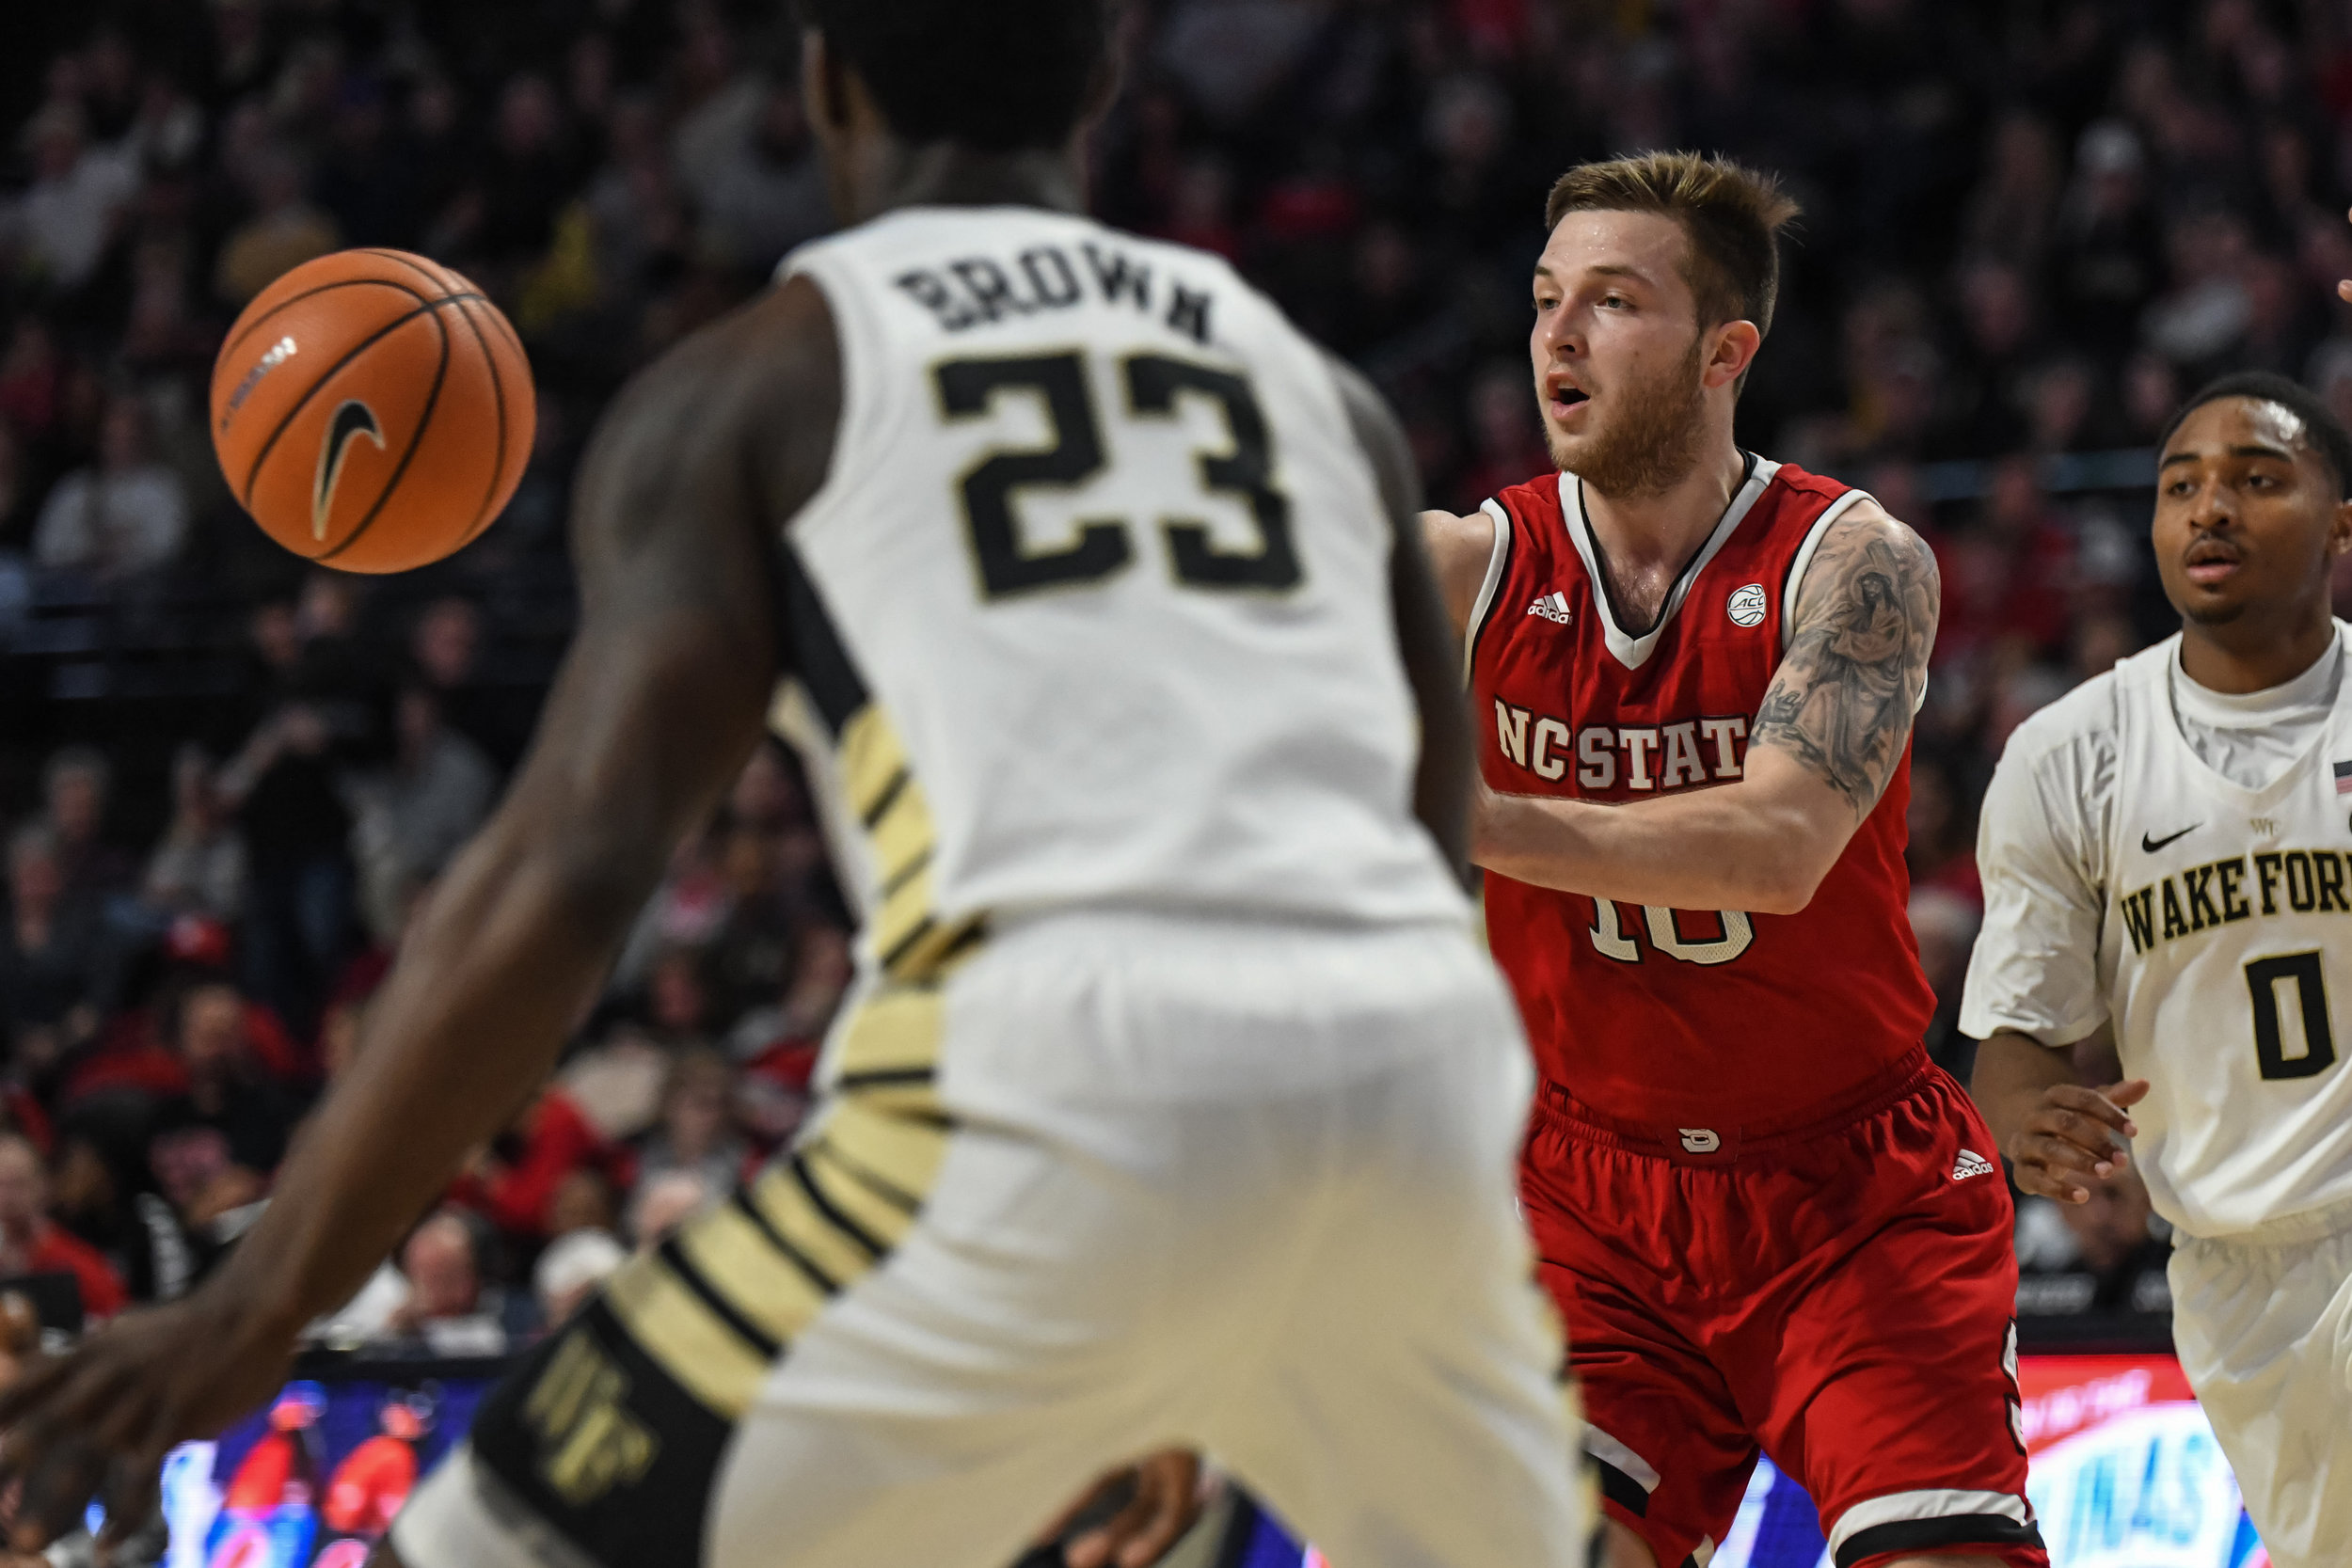 NC State at Wake Forest24.jpg